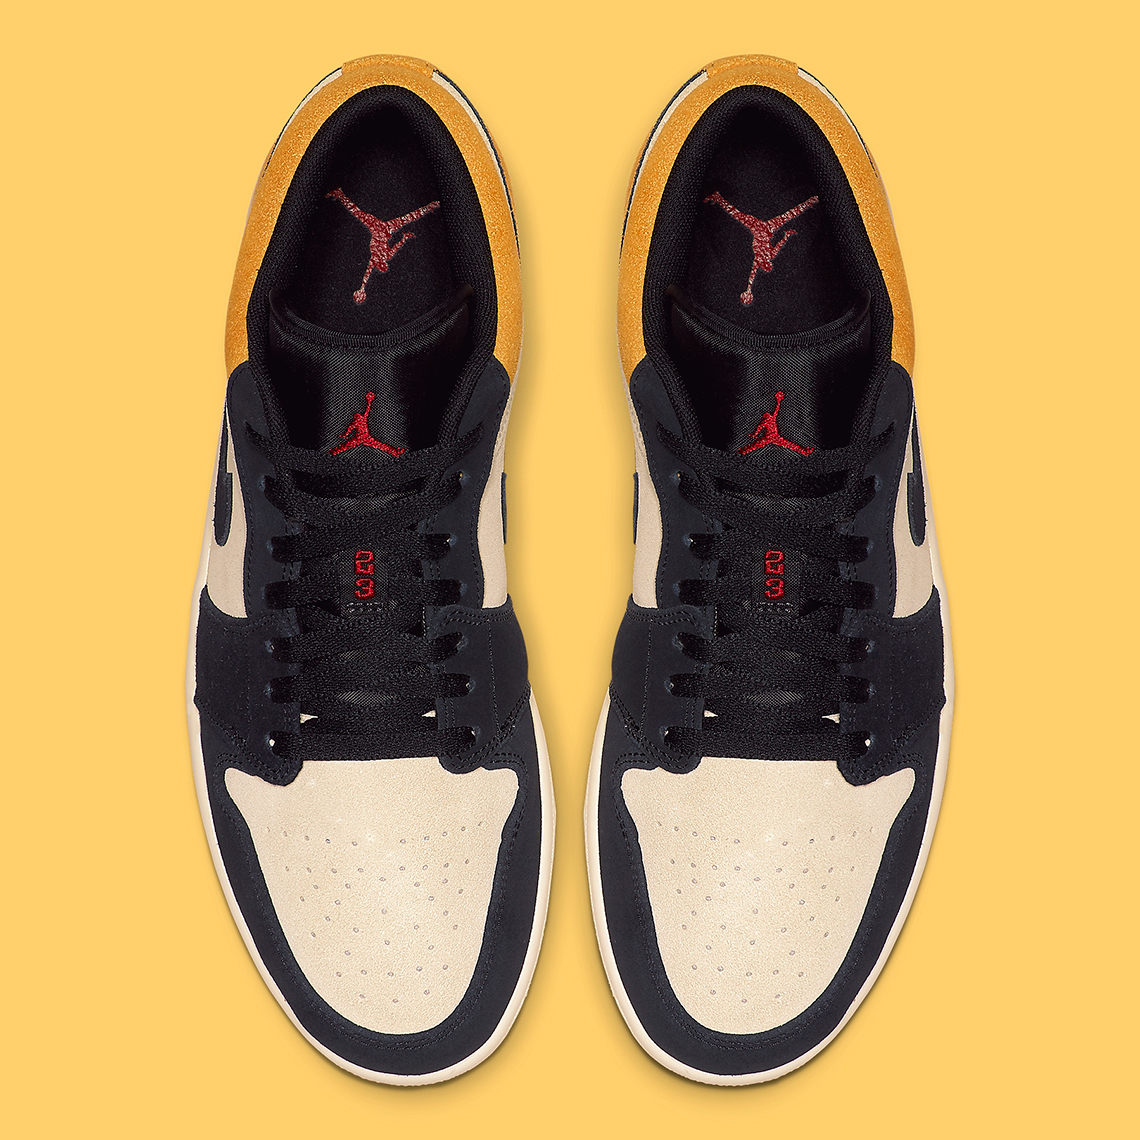 4dc49877e5e5 Air Jordan 1 Low Release Date  Summer 2019  110. Color  Sail Gym Red- University Gold-Black Style Code  553558-127